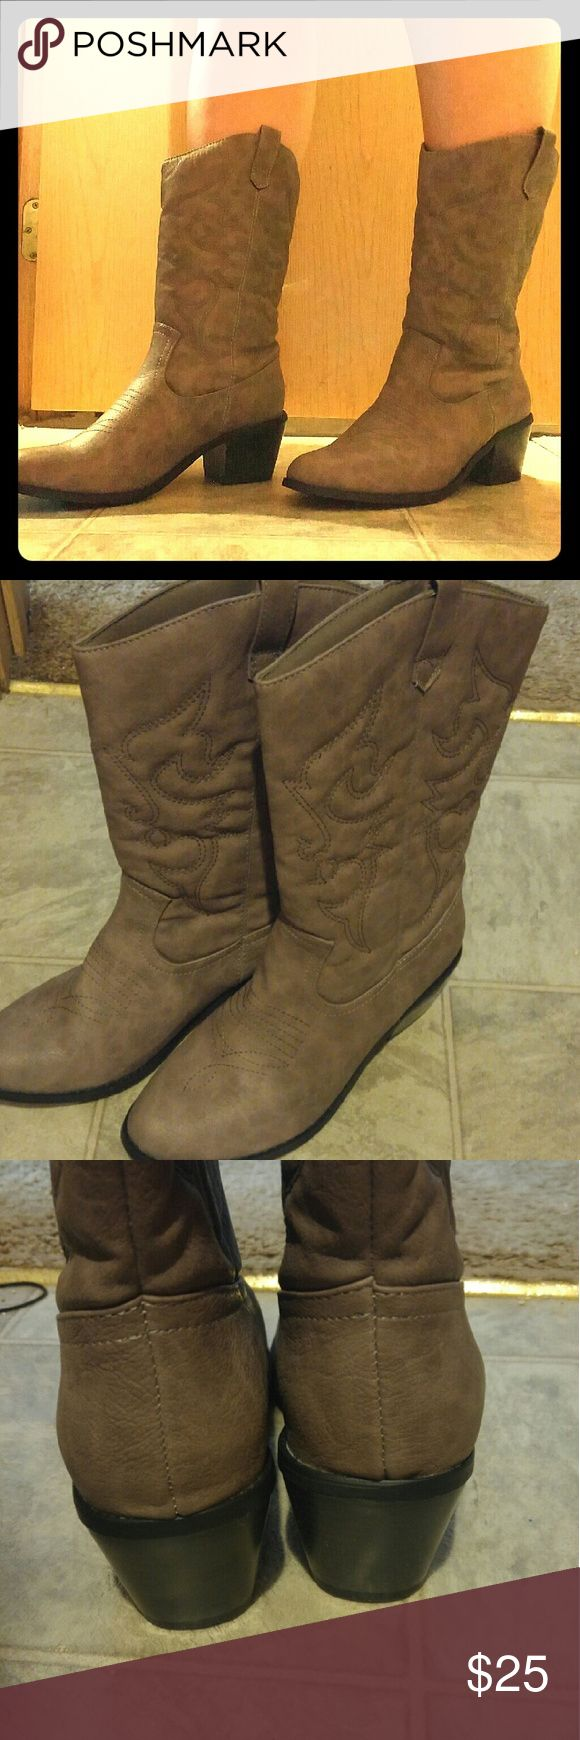 NWOT Grey-Brown Cowboy Boots Cowboy boots come to midcalf. Low heel. Never worn outside. West BLVD Miami Shoes Heeled Boots